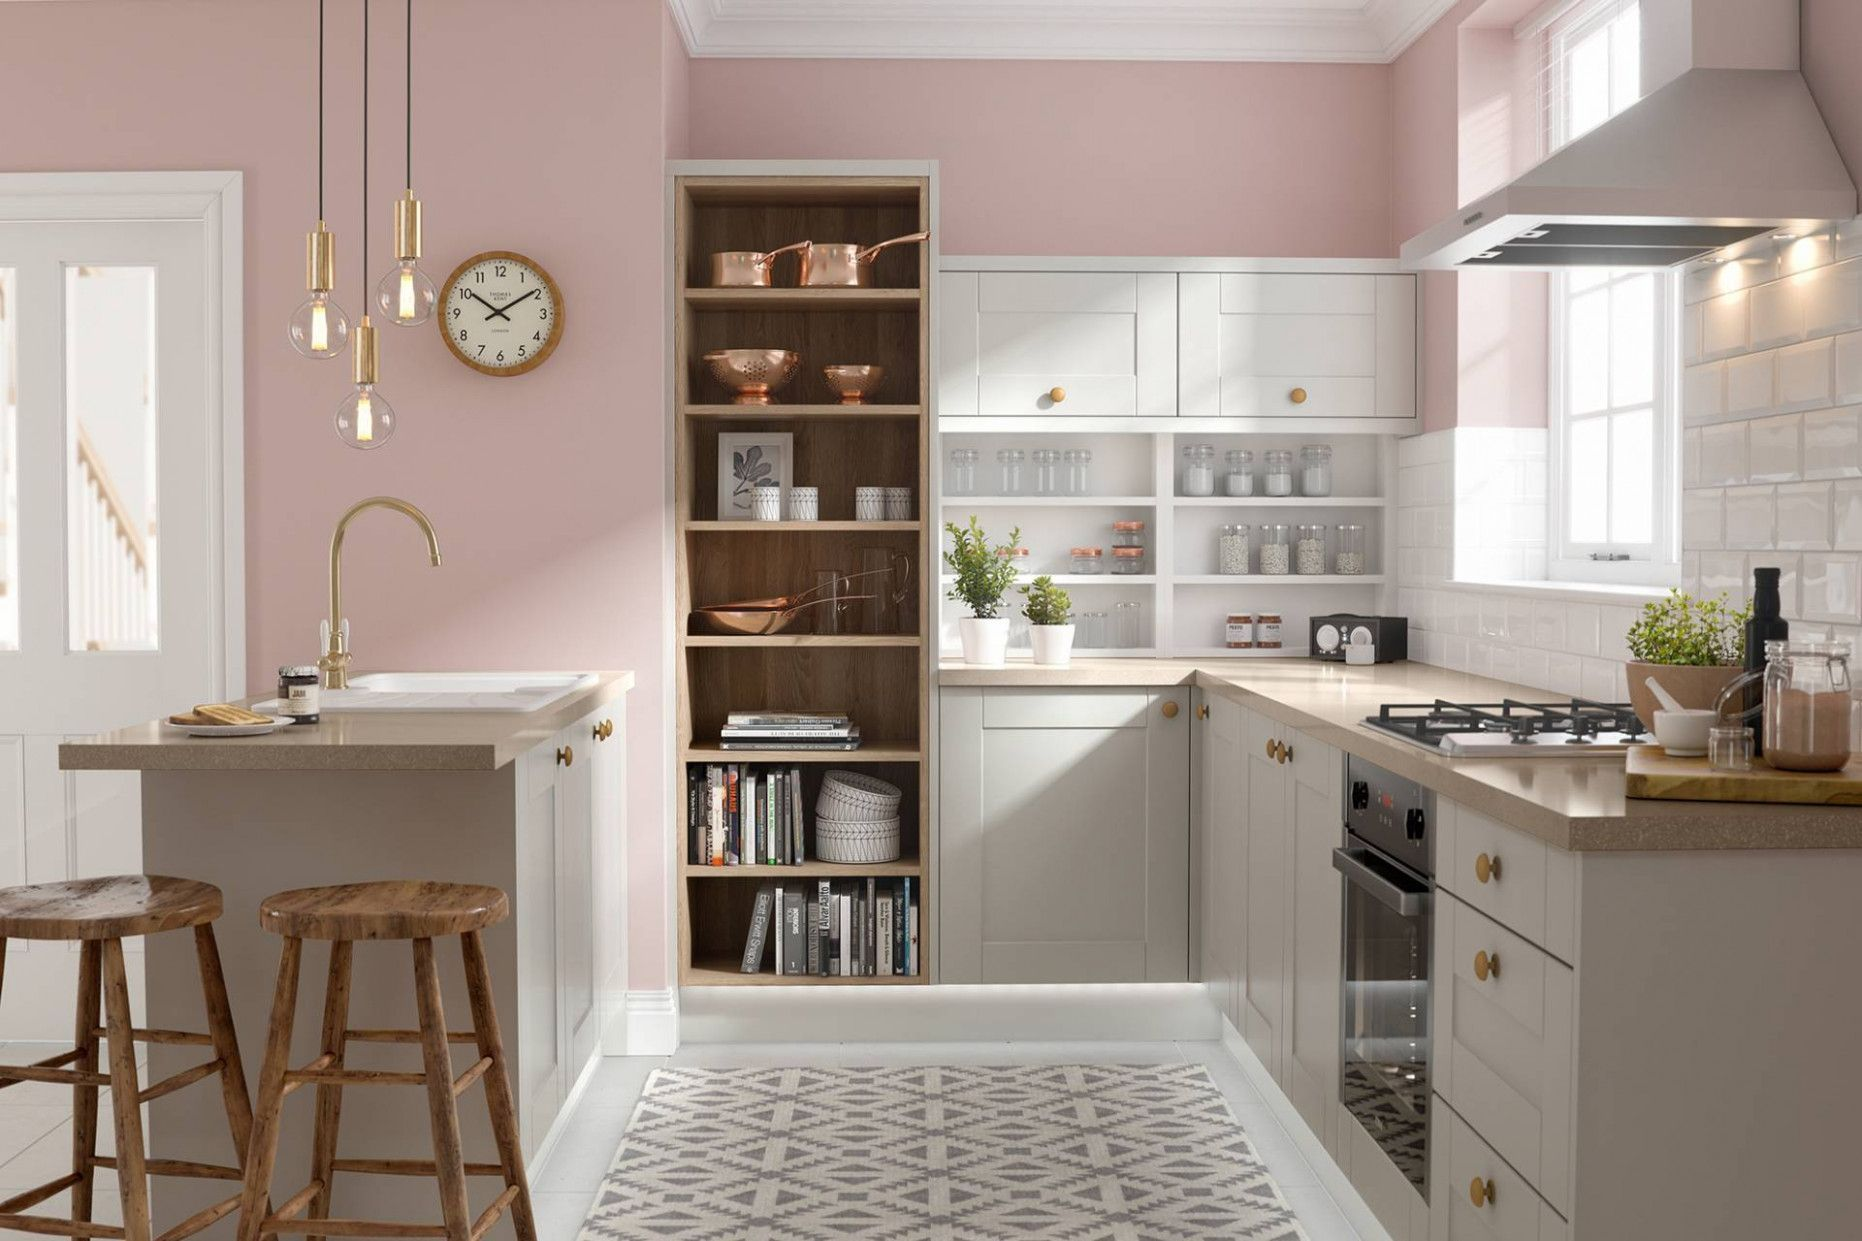 Online Modular Kitchen Design Tool Pink Kitchen Decor Grey Kitchen Designs Shaker Style Kitchens